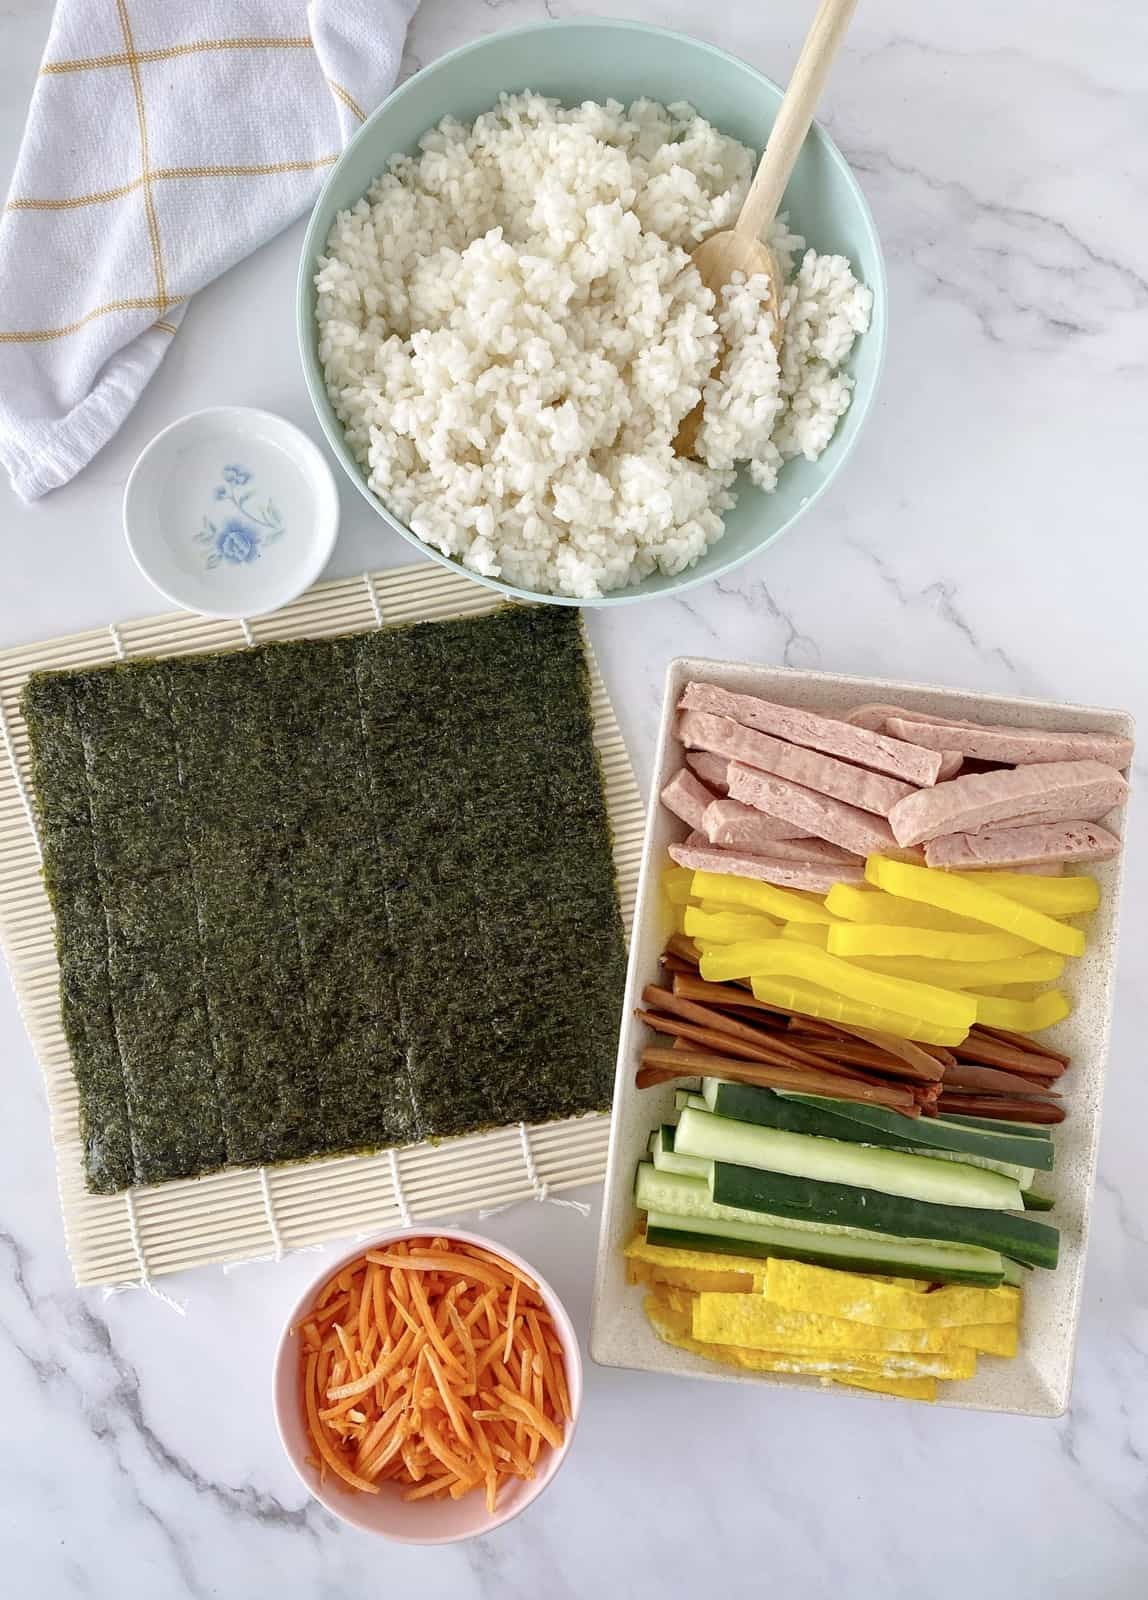 ingredients for korean sushi laid out